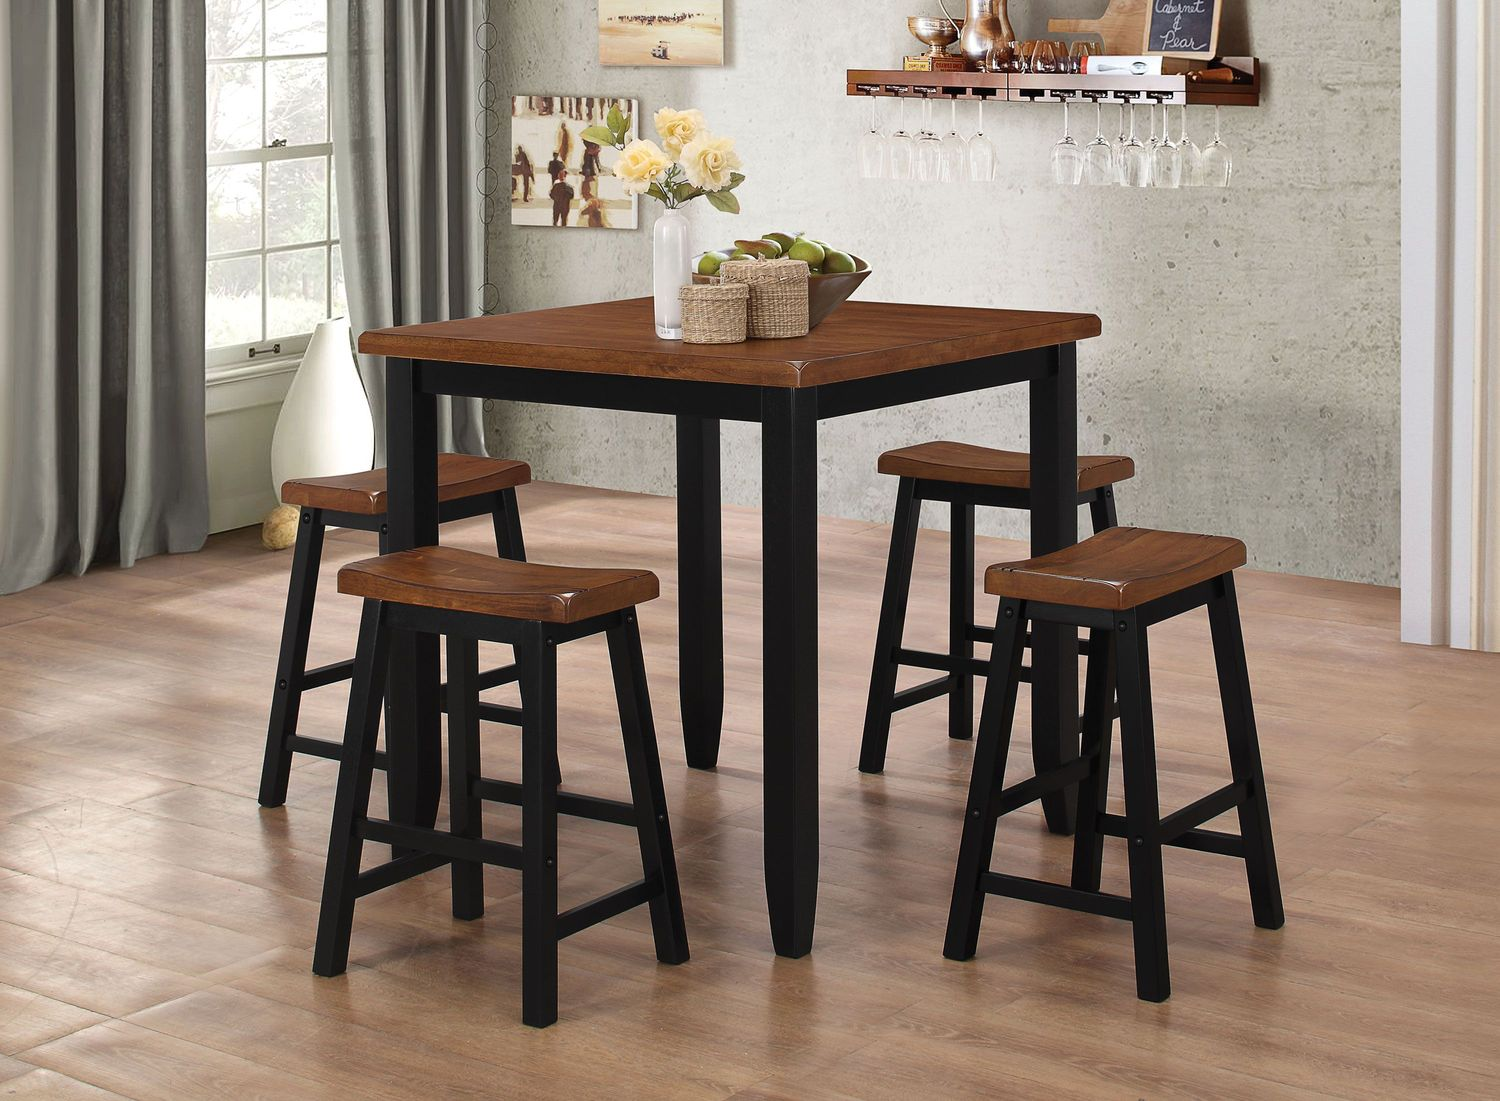 Emmerdale Counter Height Table And 4 Stools Levin Furniture